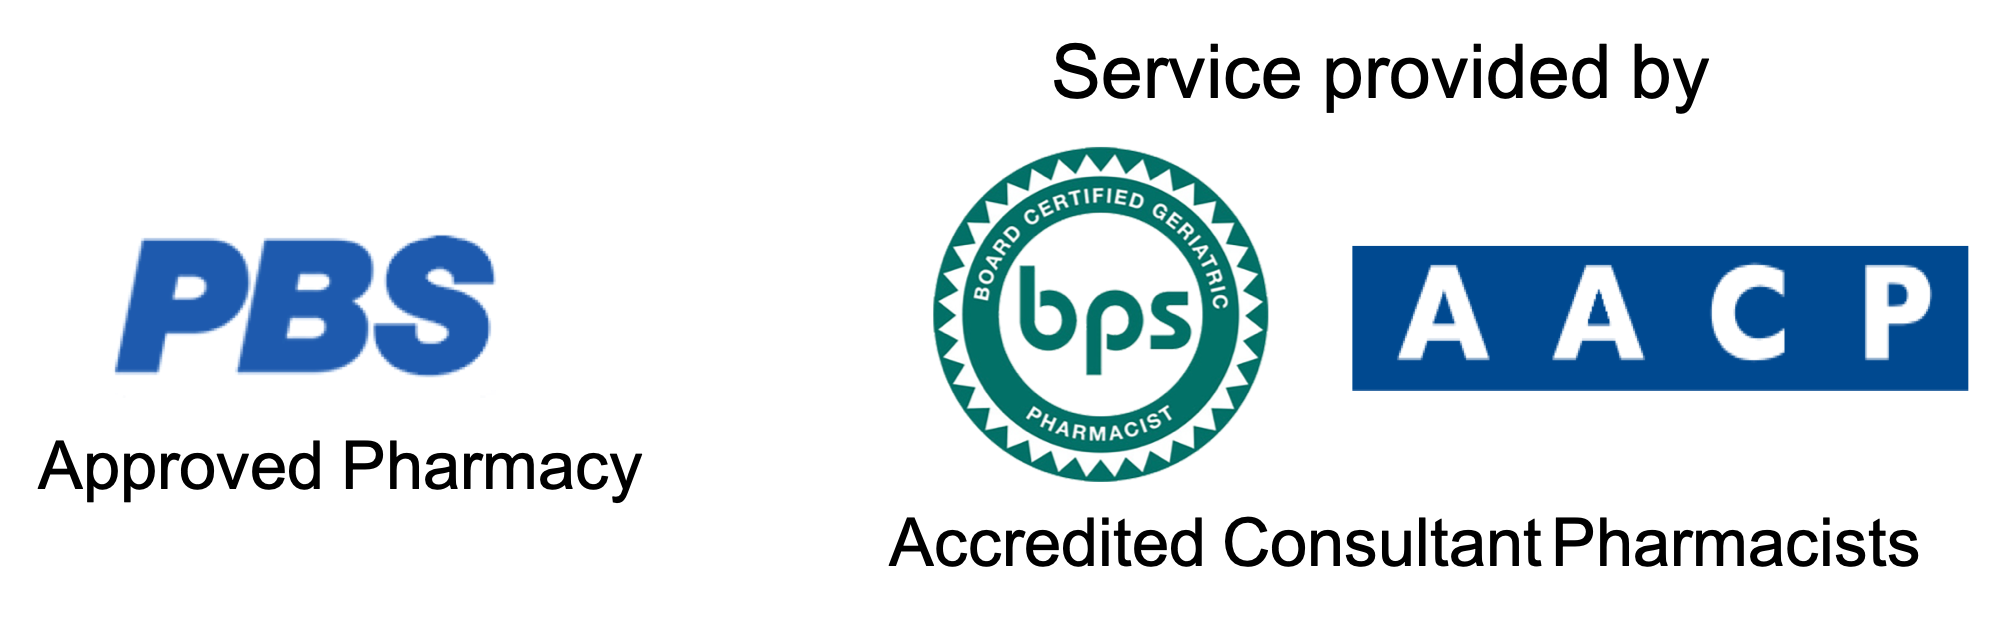 PBS Approved Pharmacy, BPS AACP Accredited Consultant Pharmacists